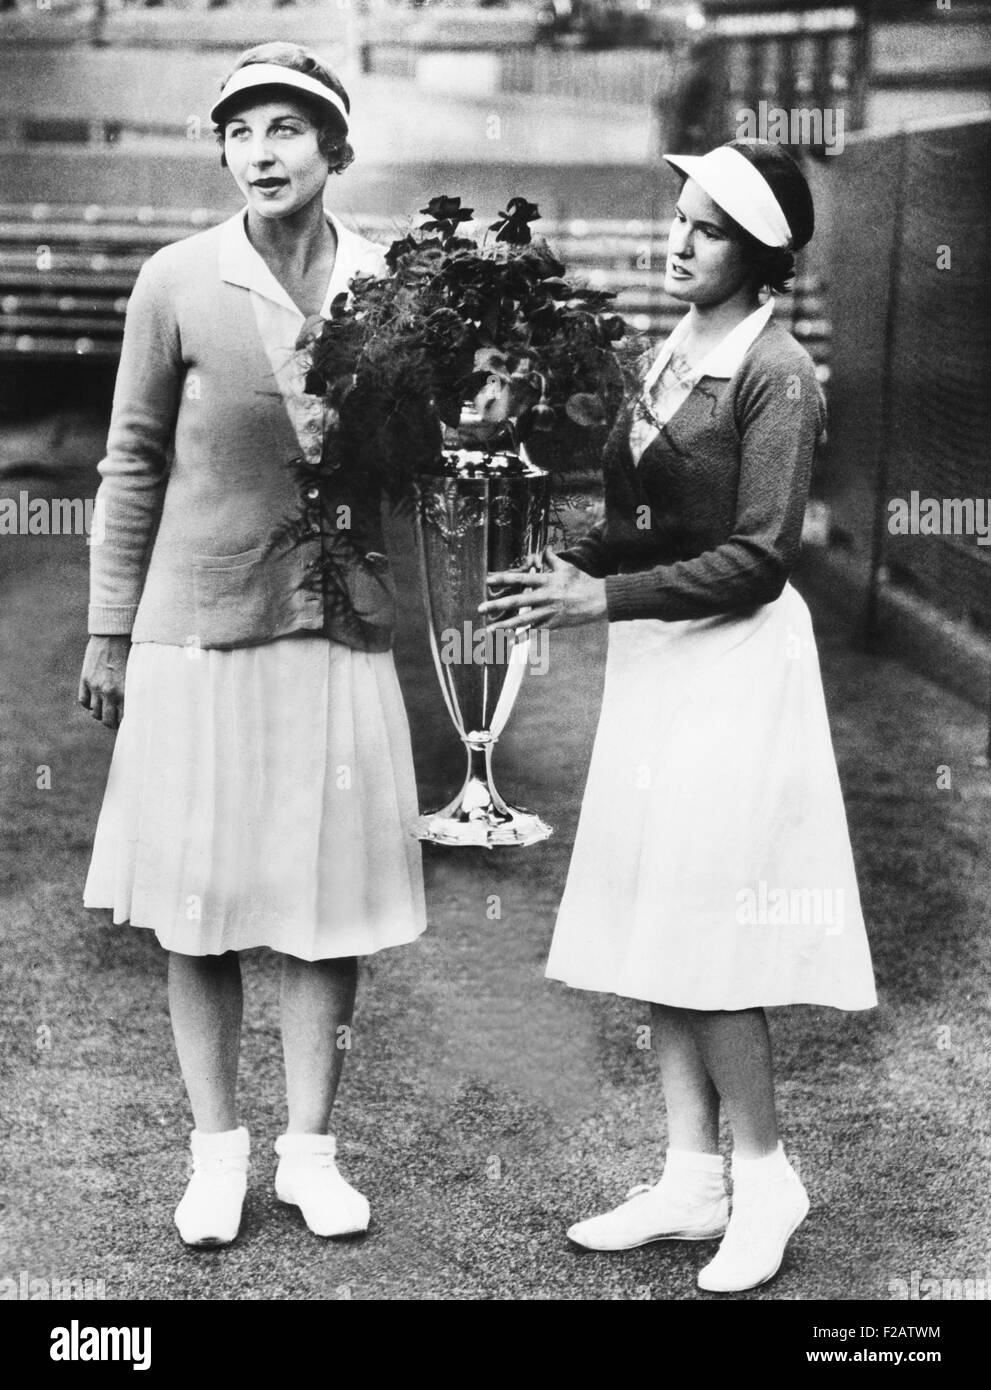 Helen Wills Moody (left) and Sarah Palfrey, with the Wightman Cup. June 20, 1932. The winning doubles partners were - Stock Image